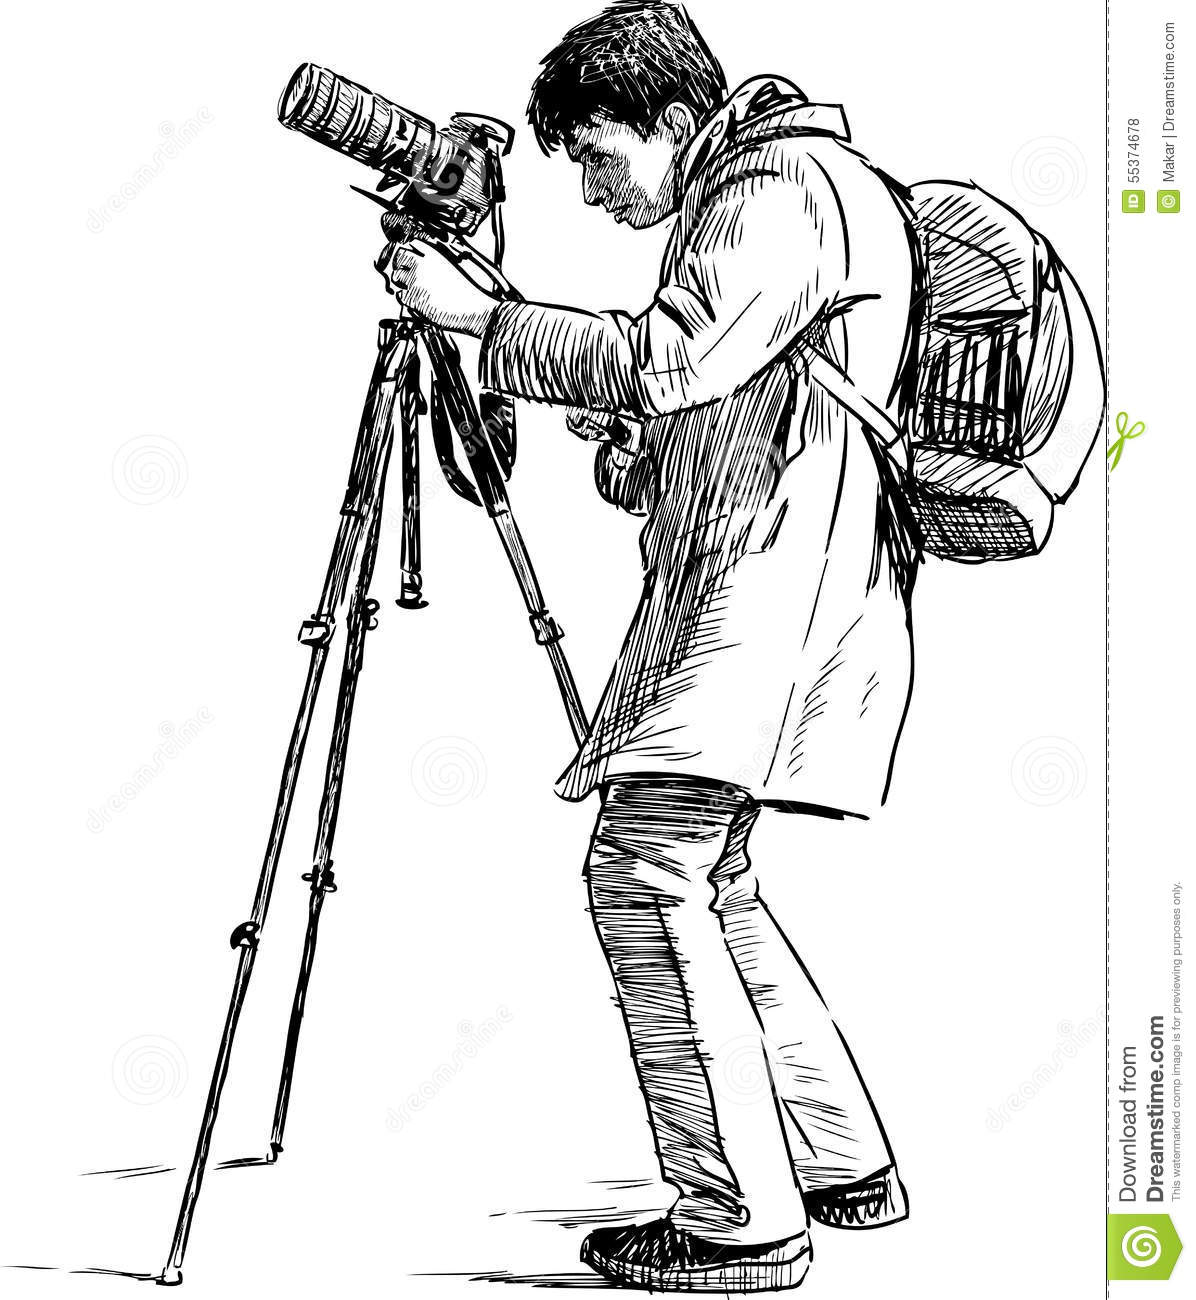 Person photographing stock vector. Illustration of white ...  Person photogra...